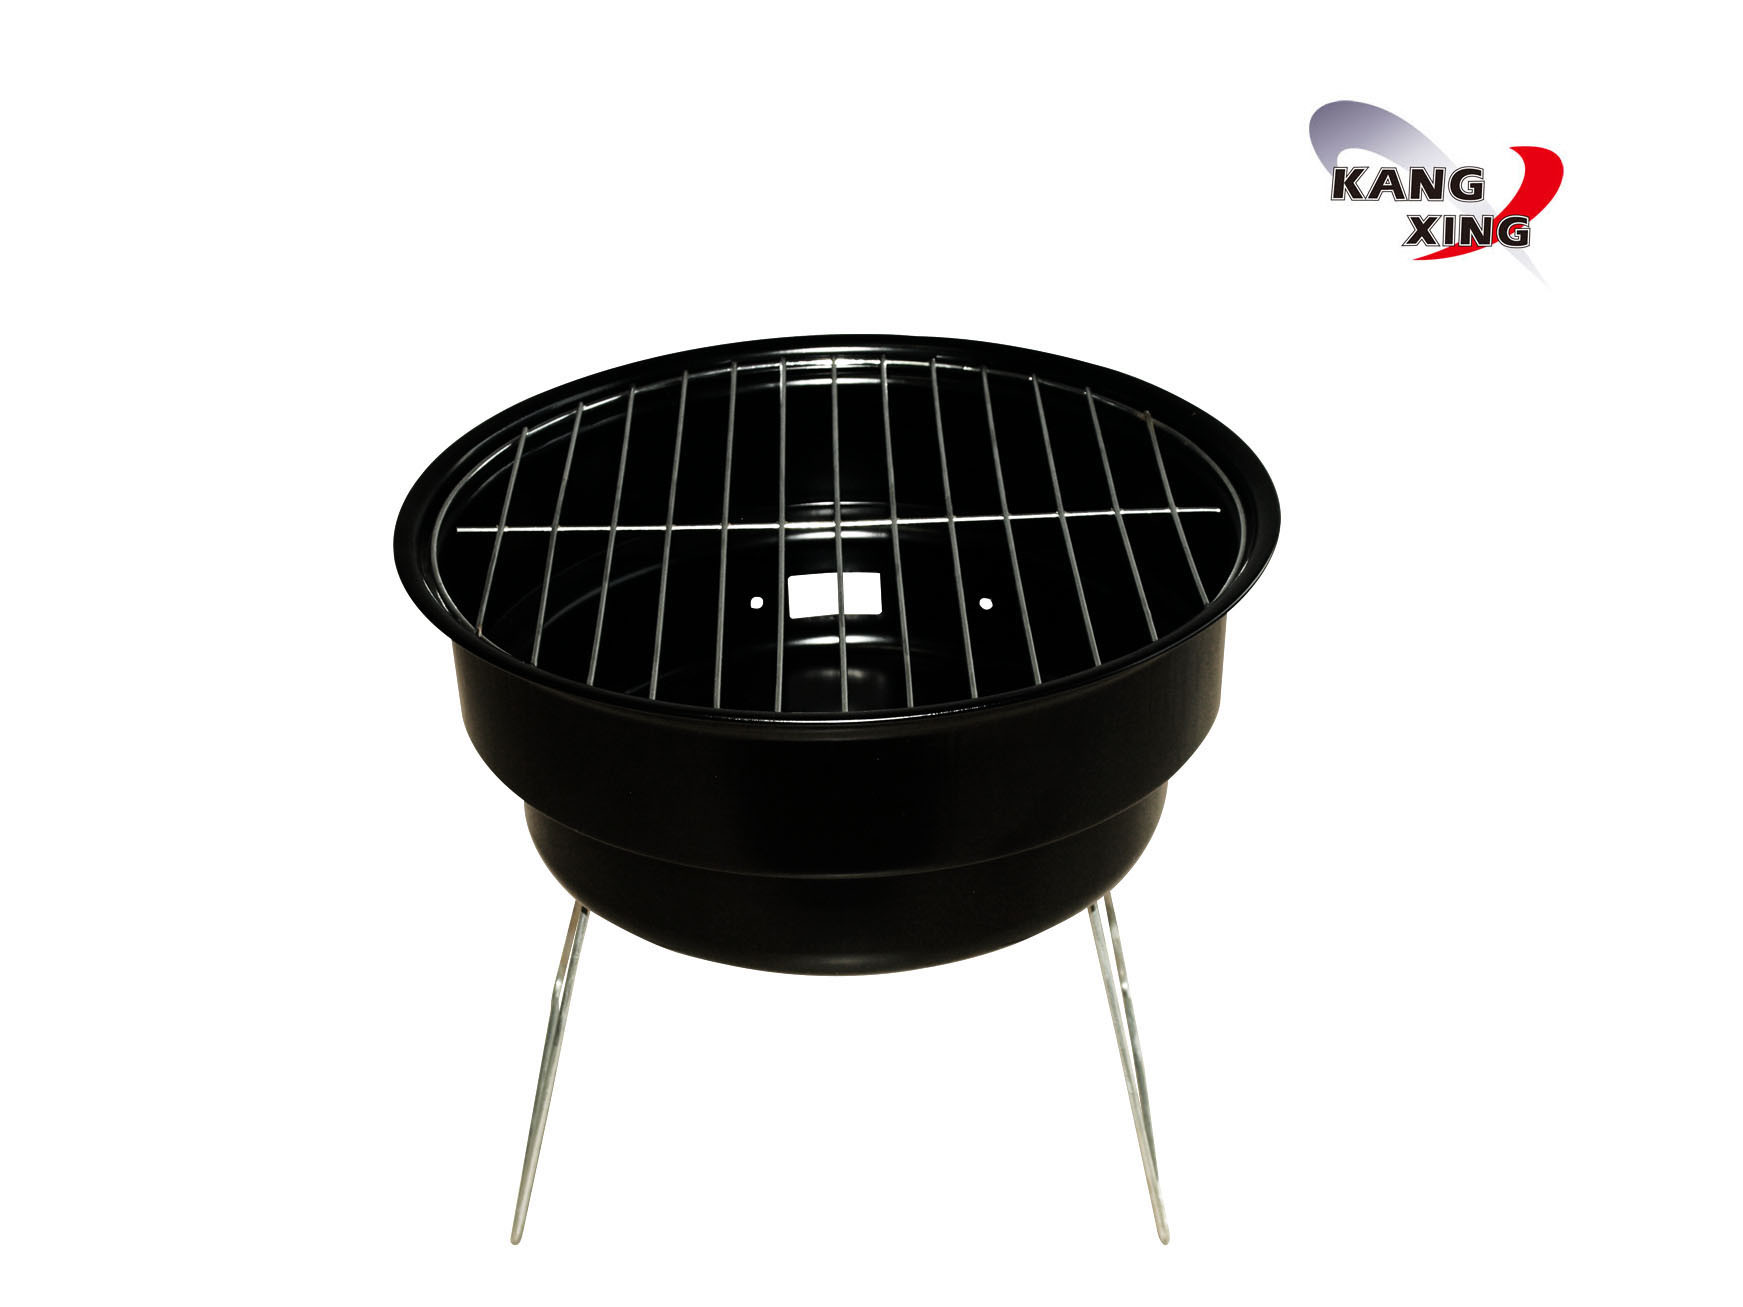 pin mini bbq grill holzkohle kugelgrill lila yategocom on. Black Bedroom Furniture Sets. Home Design Ideas